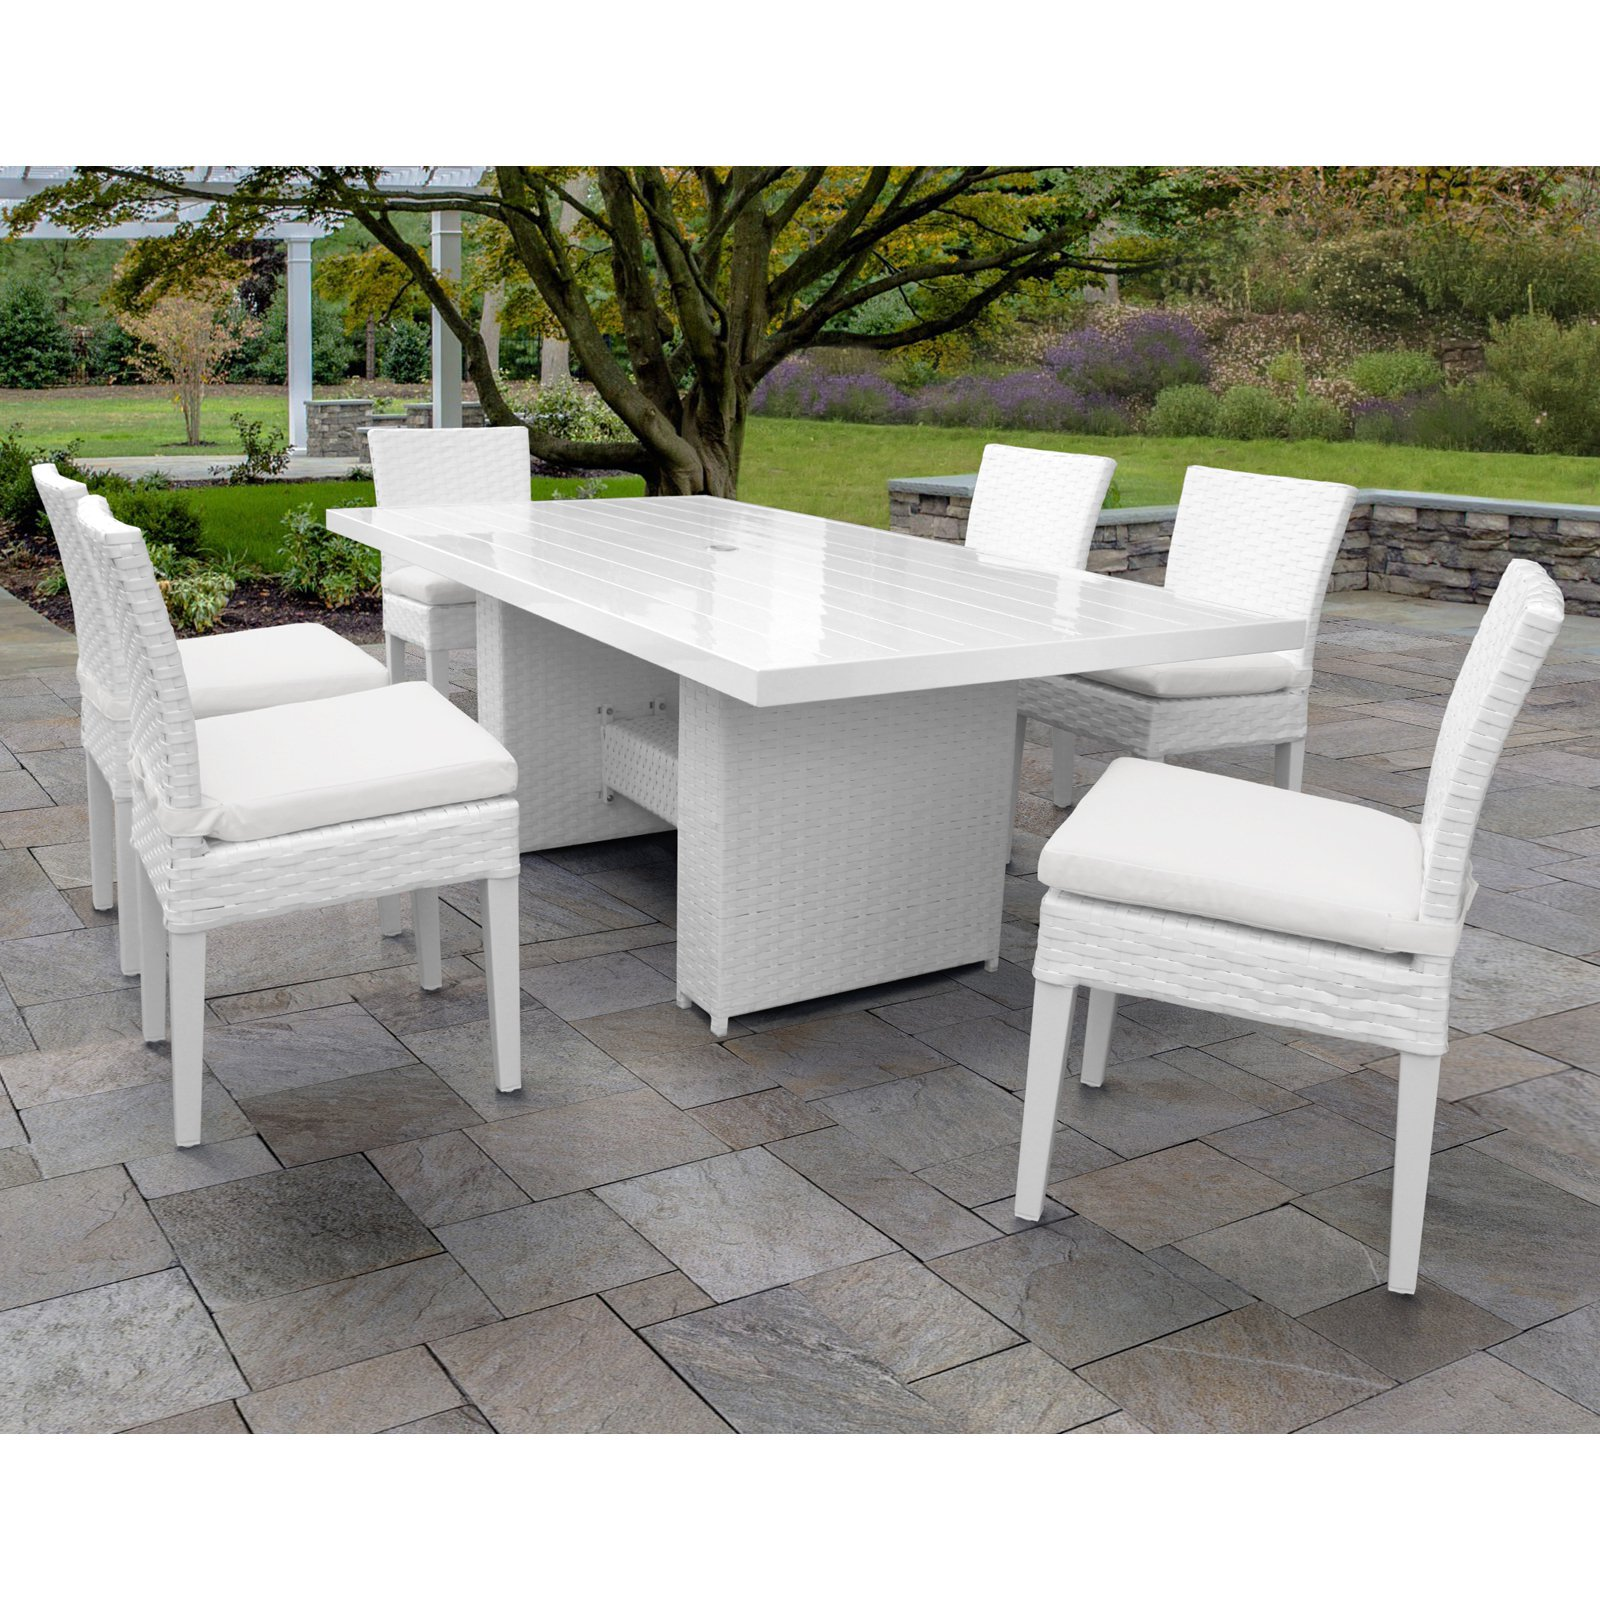 TK Classics Miami Wicker 7 Piece Patio Dining Set with Armless Chairs